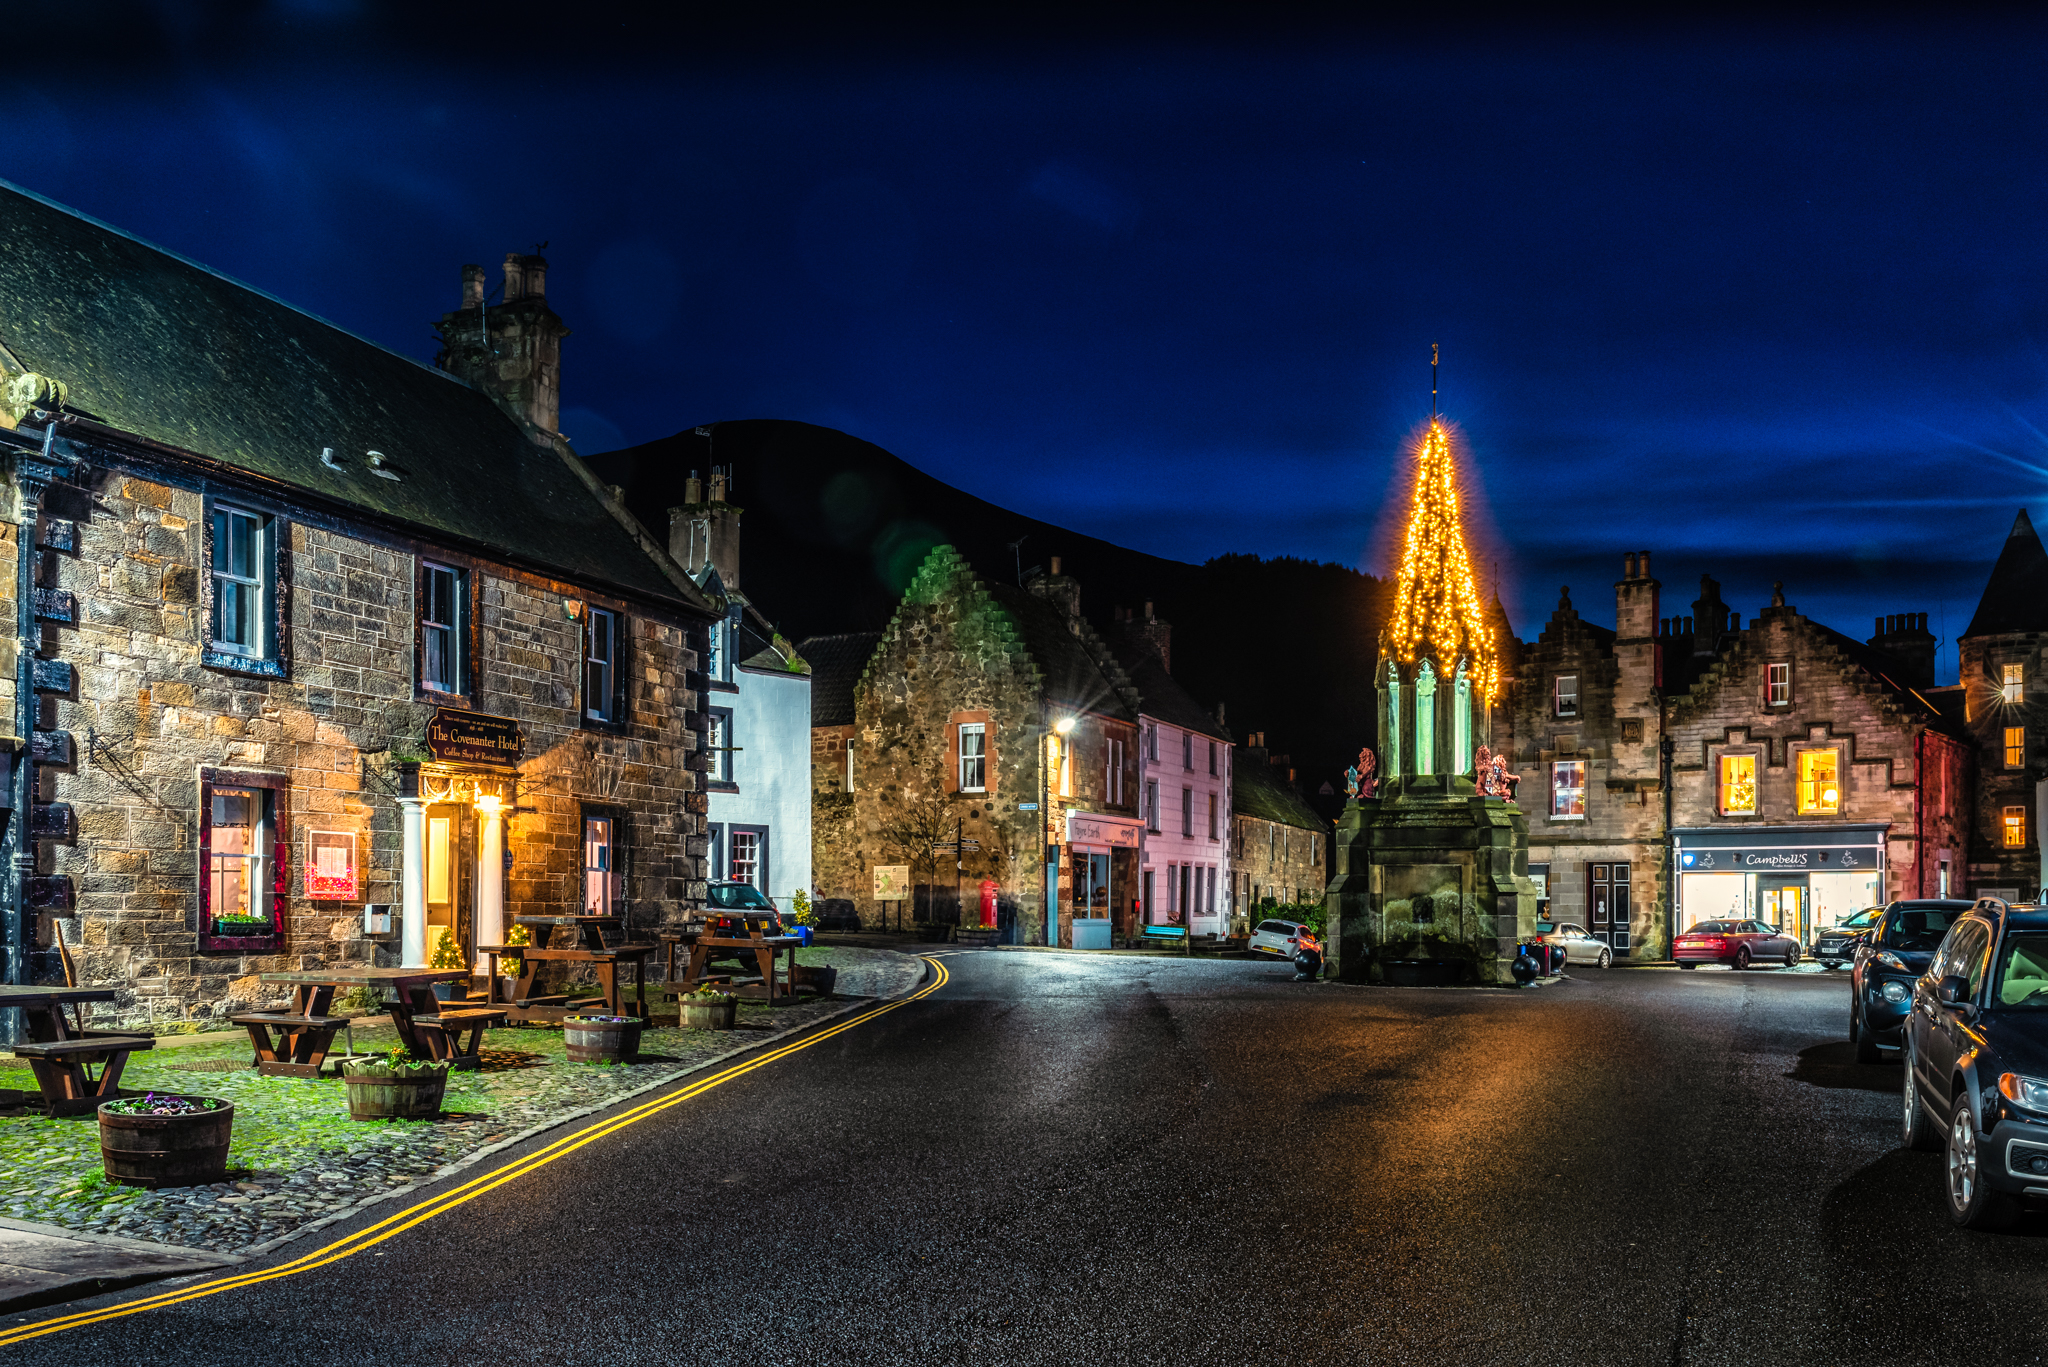 Falkland at Christmas